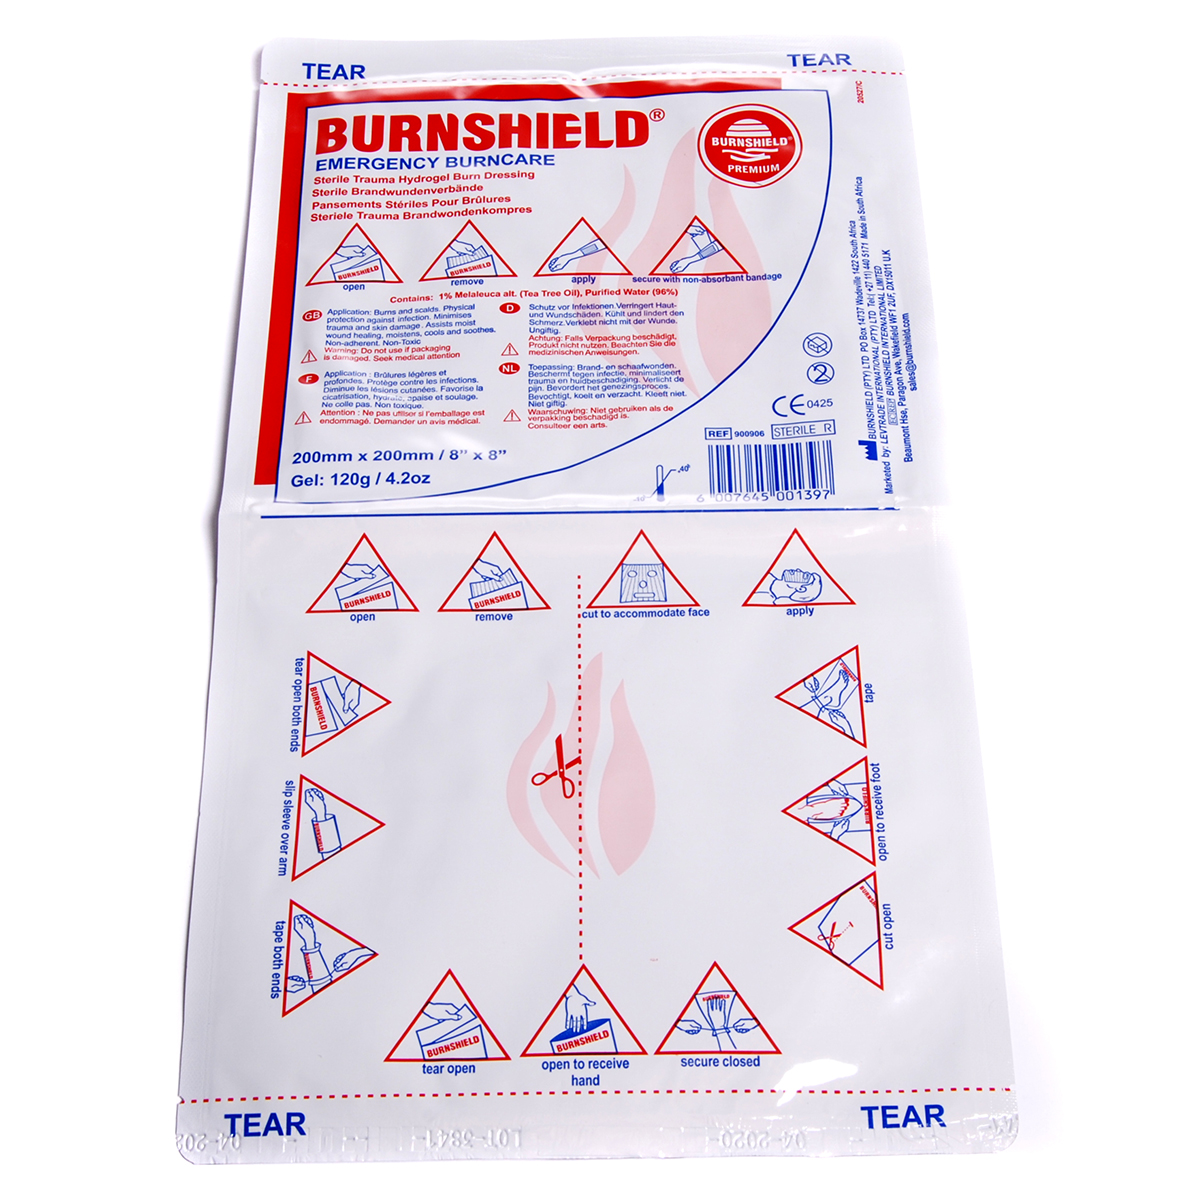 20cm x 20cm Single Burnshield® Dressing